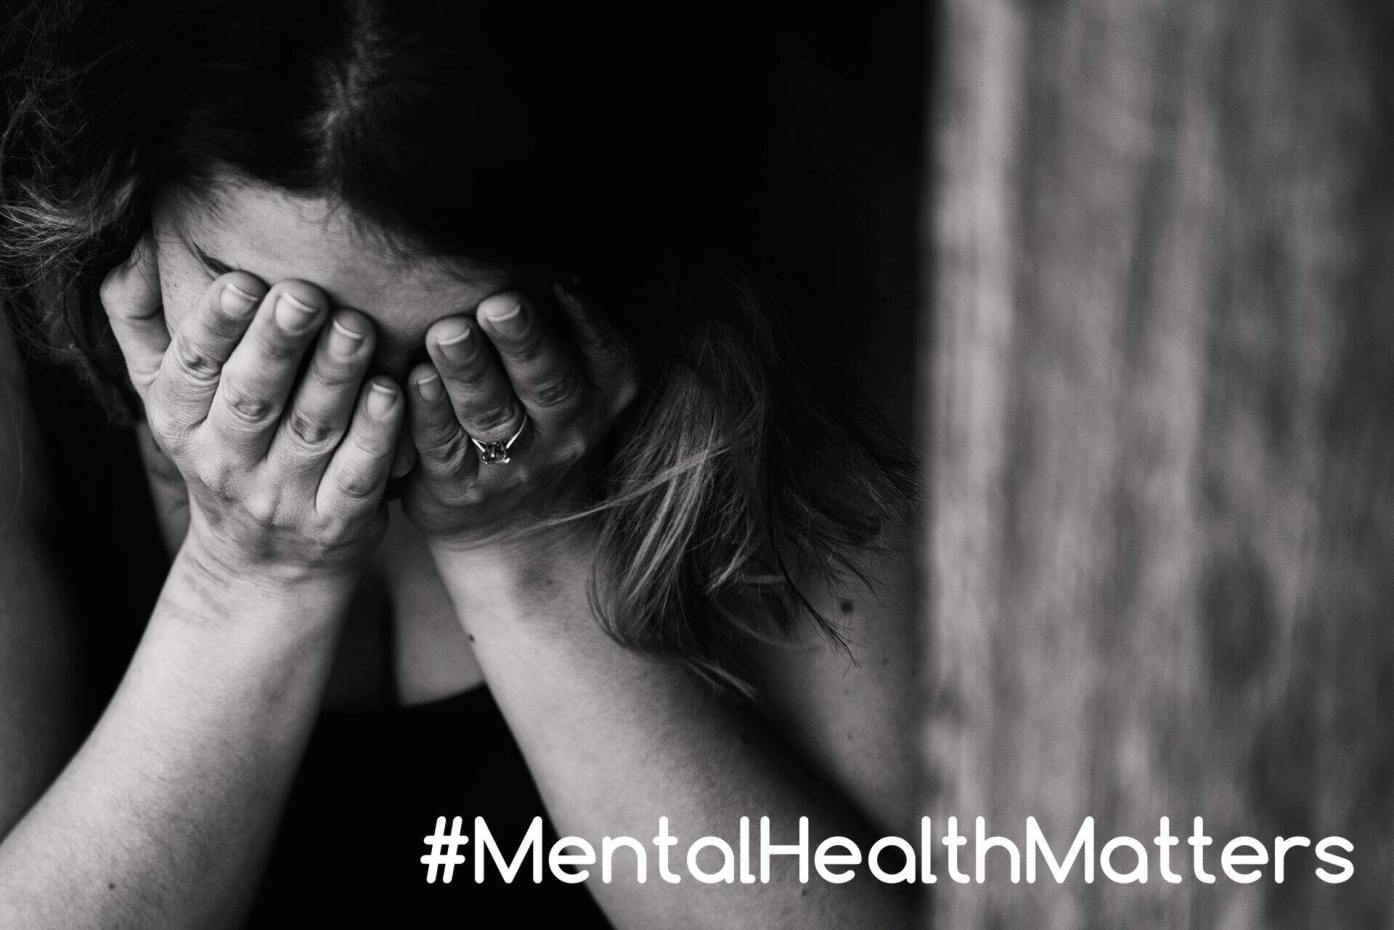 Up to 1 in 10 women experience antenatal depression (also called prenatal depression). Antenatal anxiety or depression is a serious illness but there are treatments, support and services available to help you through this experience. #MentalHealthMatters